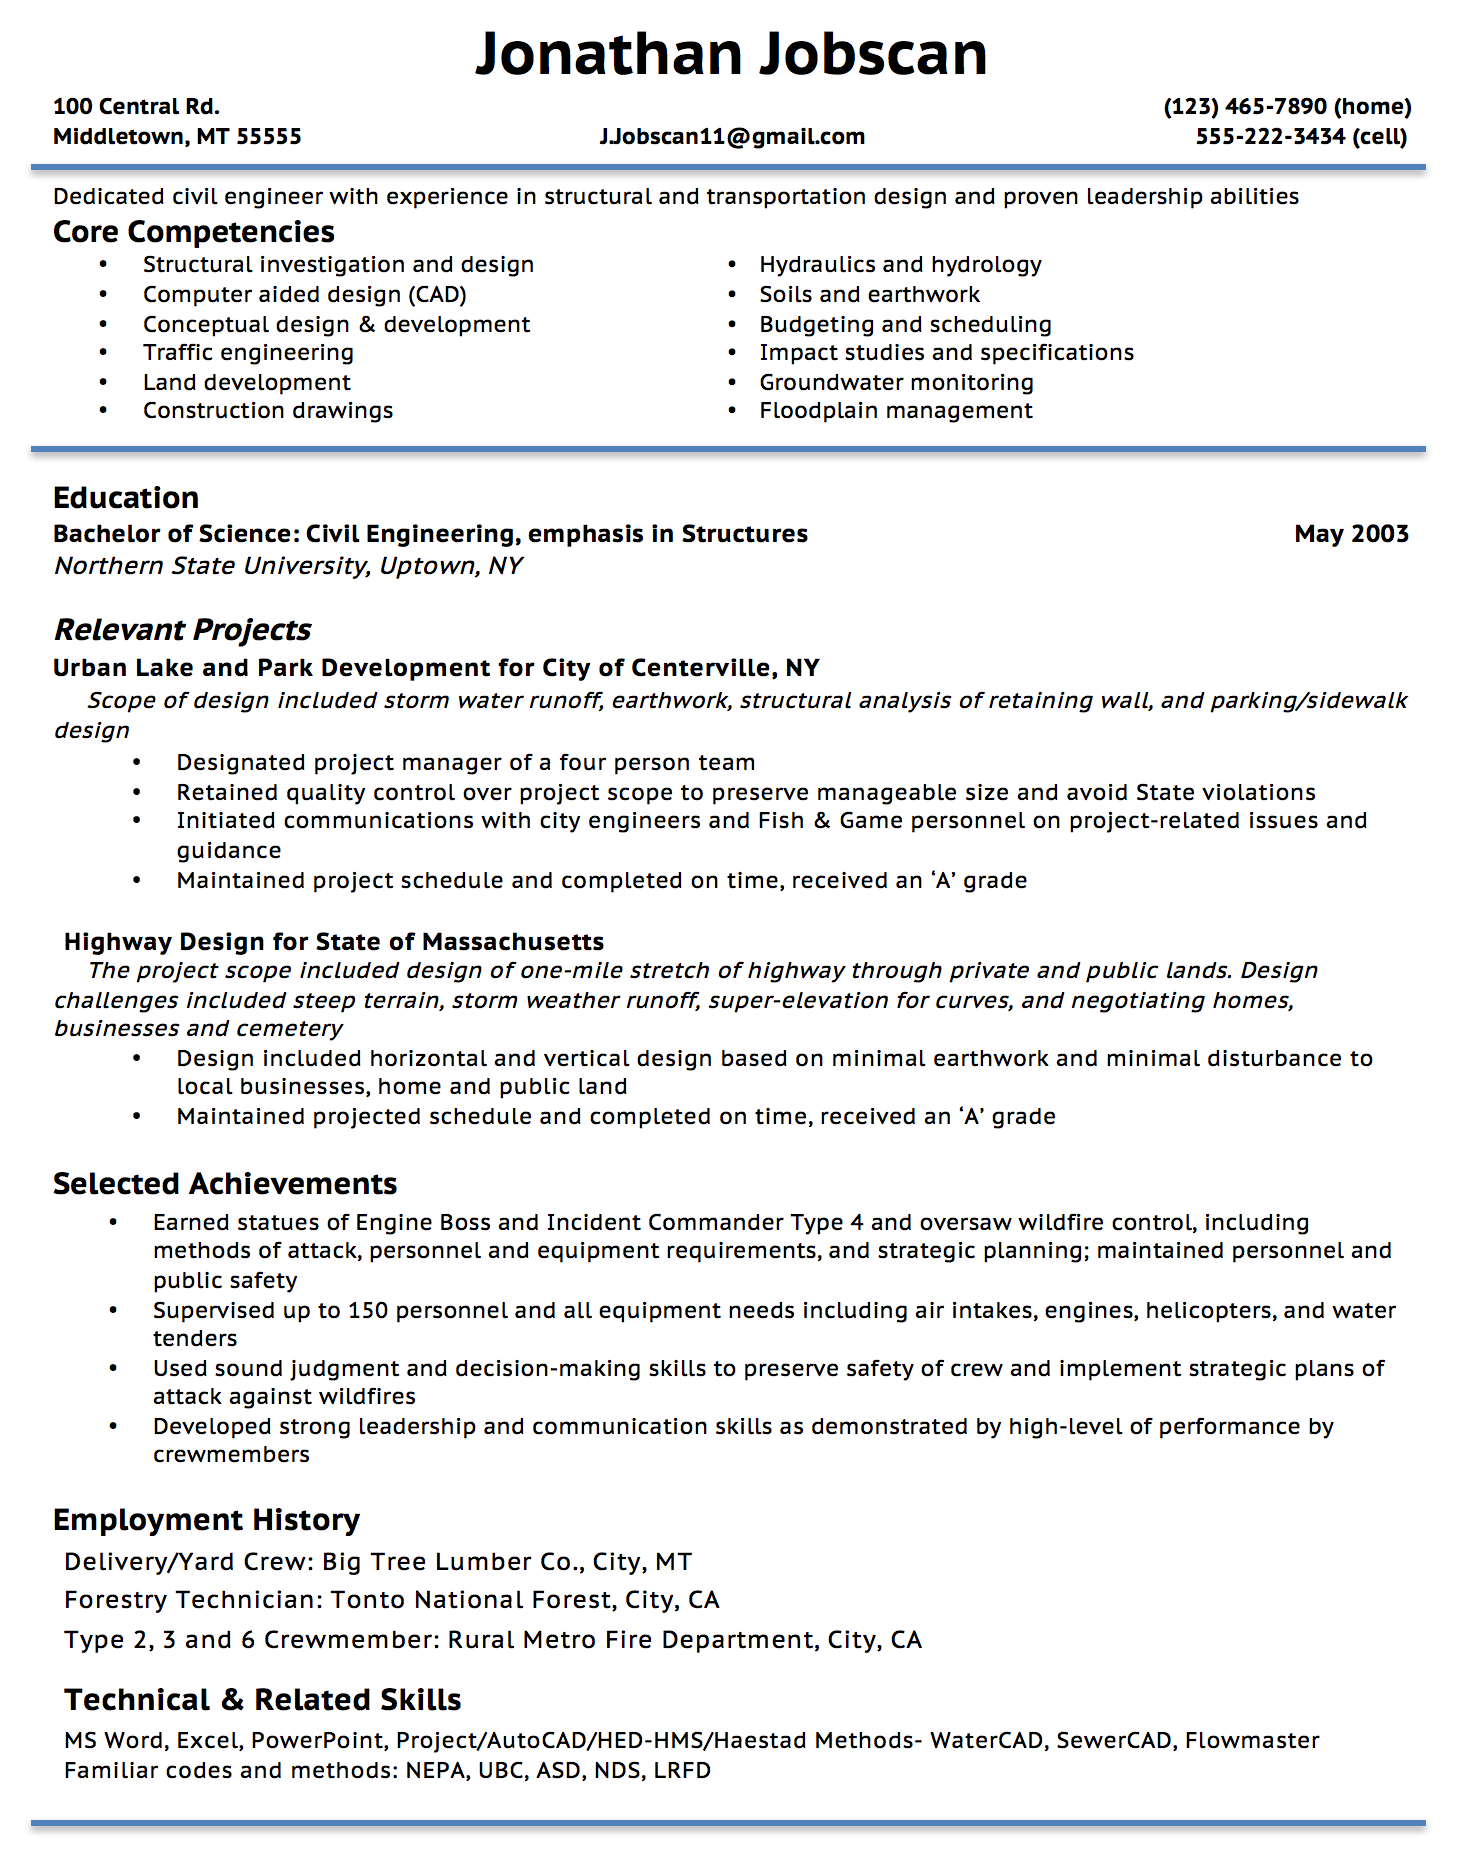 Opposenewapstandardsus  Outstanding Resume Writing Guide  Jobscan With Magnificent Example Of A Functional Resume Format With Amusing Best Free Resume Builder Also Resume For College Student In Addition Babysitter Resume And Project Management Resume As Well As Sample Resume Templates Additionally Examples Of Good Resumes From Jobscanco With Opposenewapstandardsus  Magnificent Resume Writing Guide  Jobscan With Amusing Example Of A Functional Resume Format And Outstanding Best Free Resume Builder Also Resume For College Student In Addition Babysitter Resume From Jobscanco